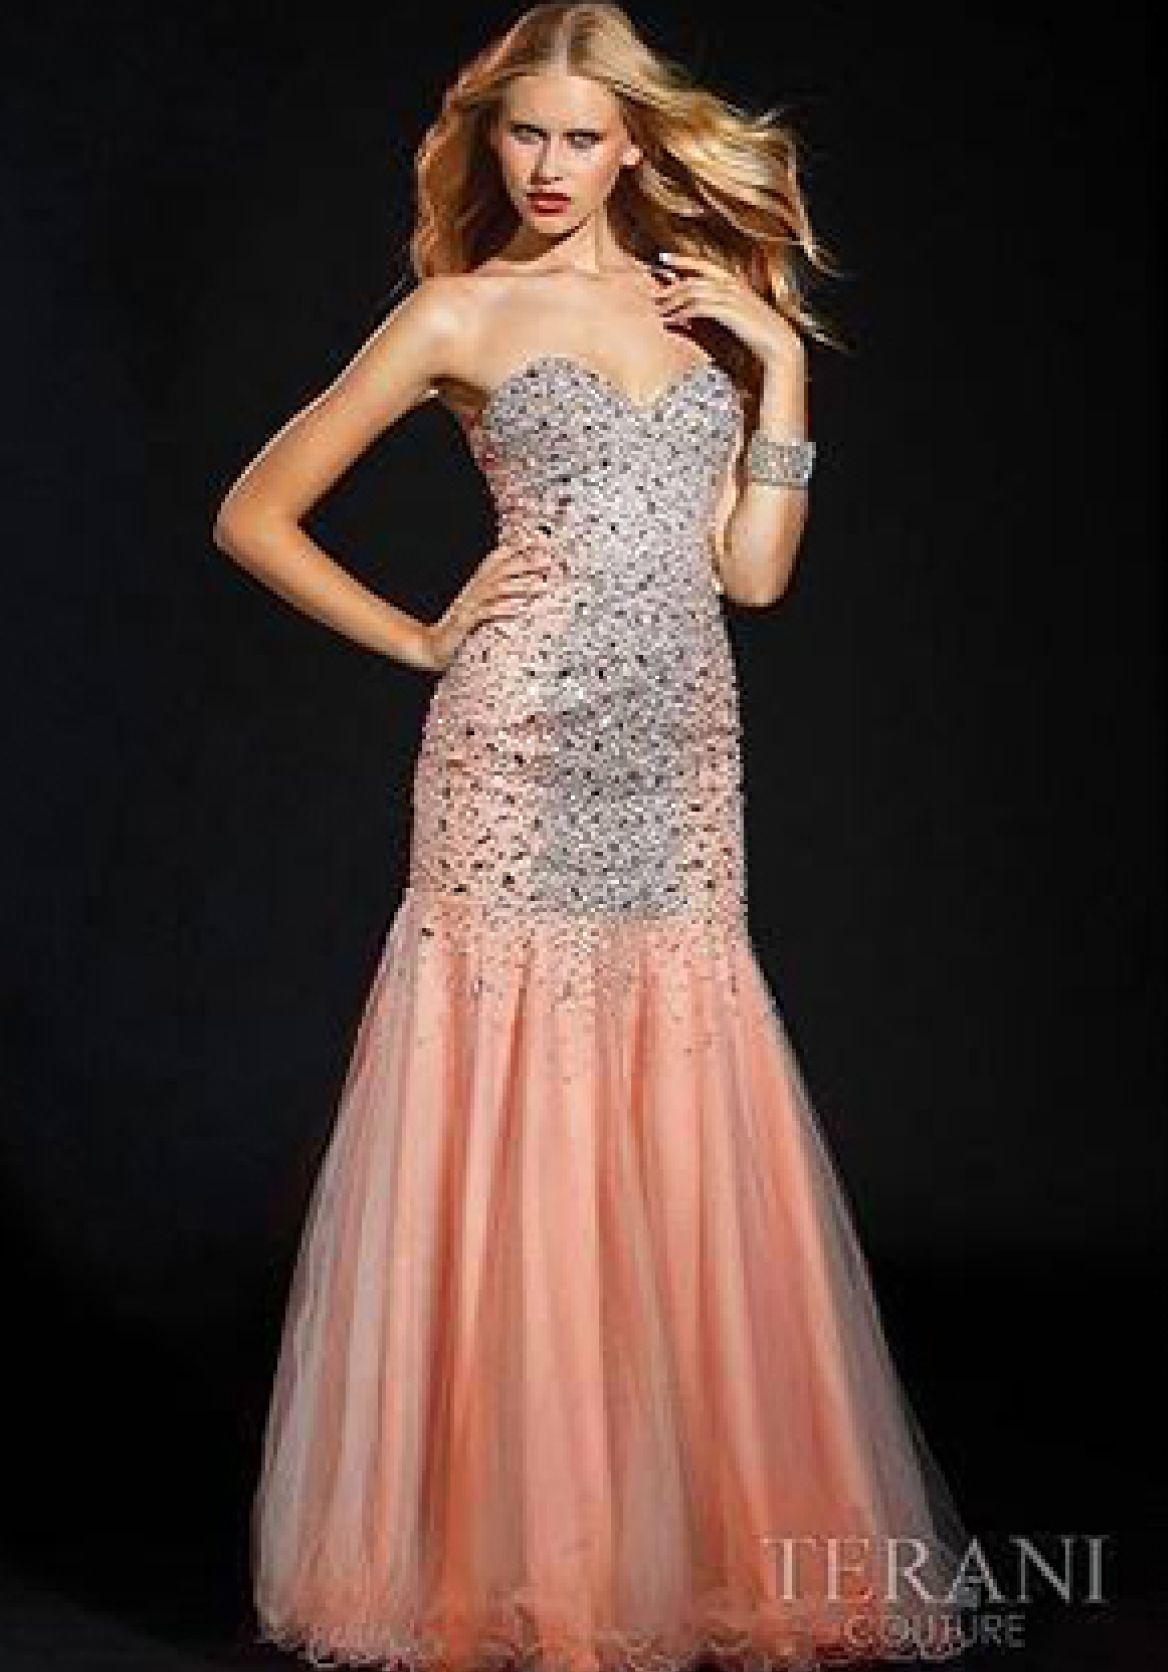 Where To Buy Prom Dresses In King Of